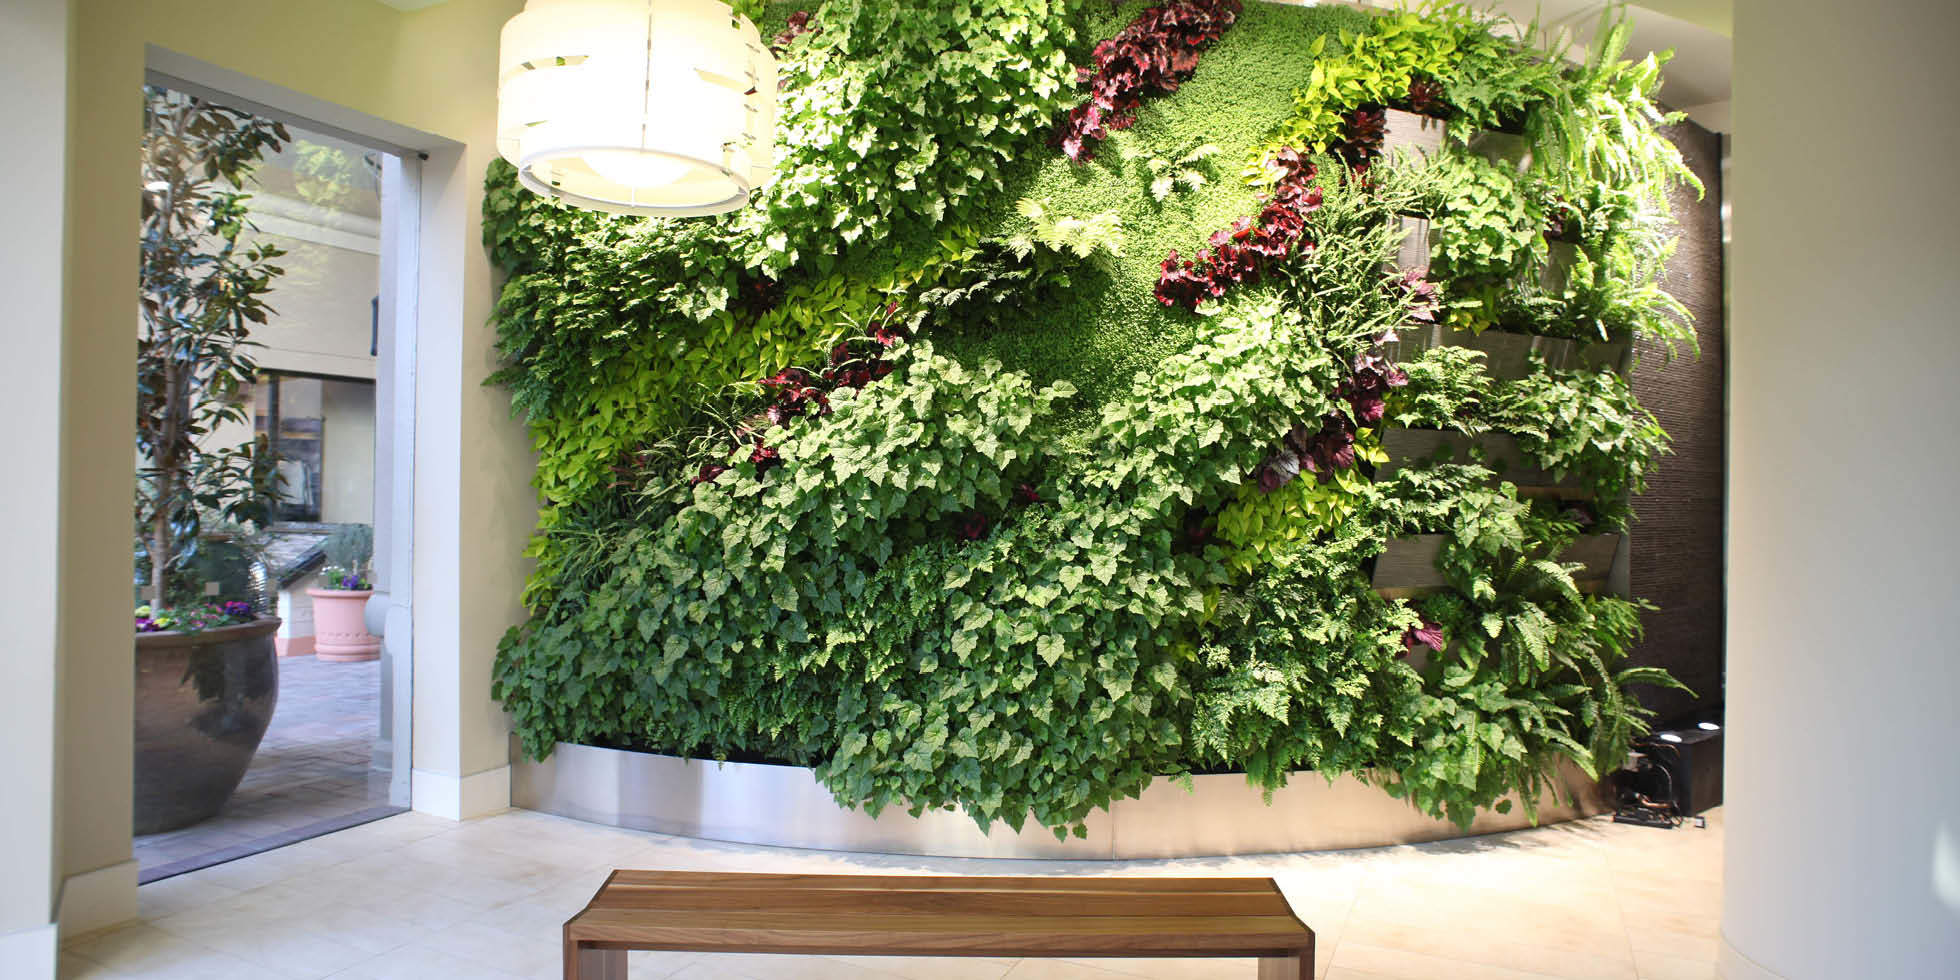 Corte Madera Town Center Living Wall by Habitat Horticulture - View 1